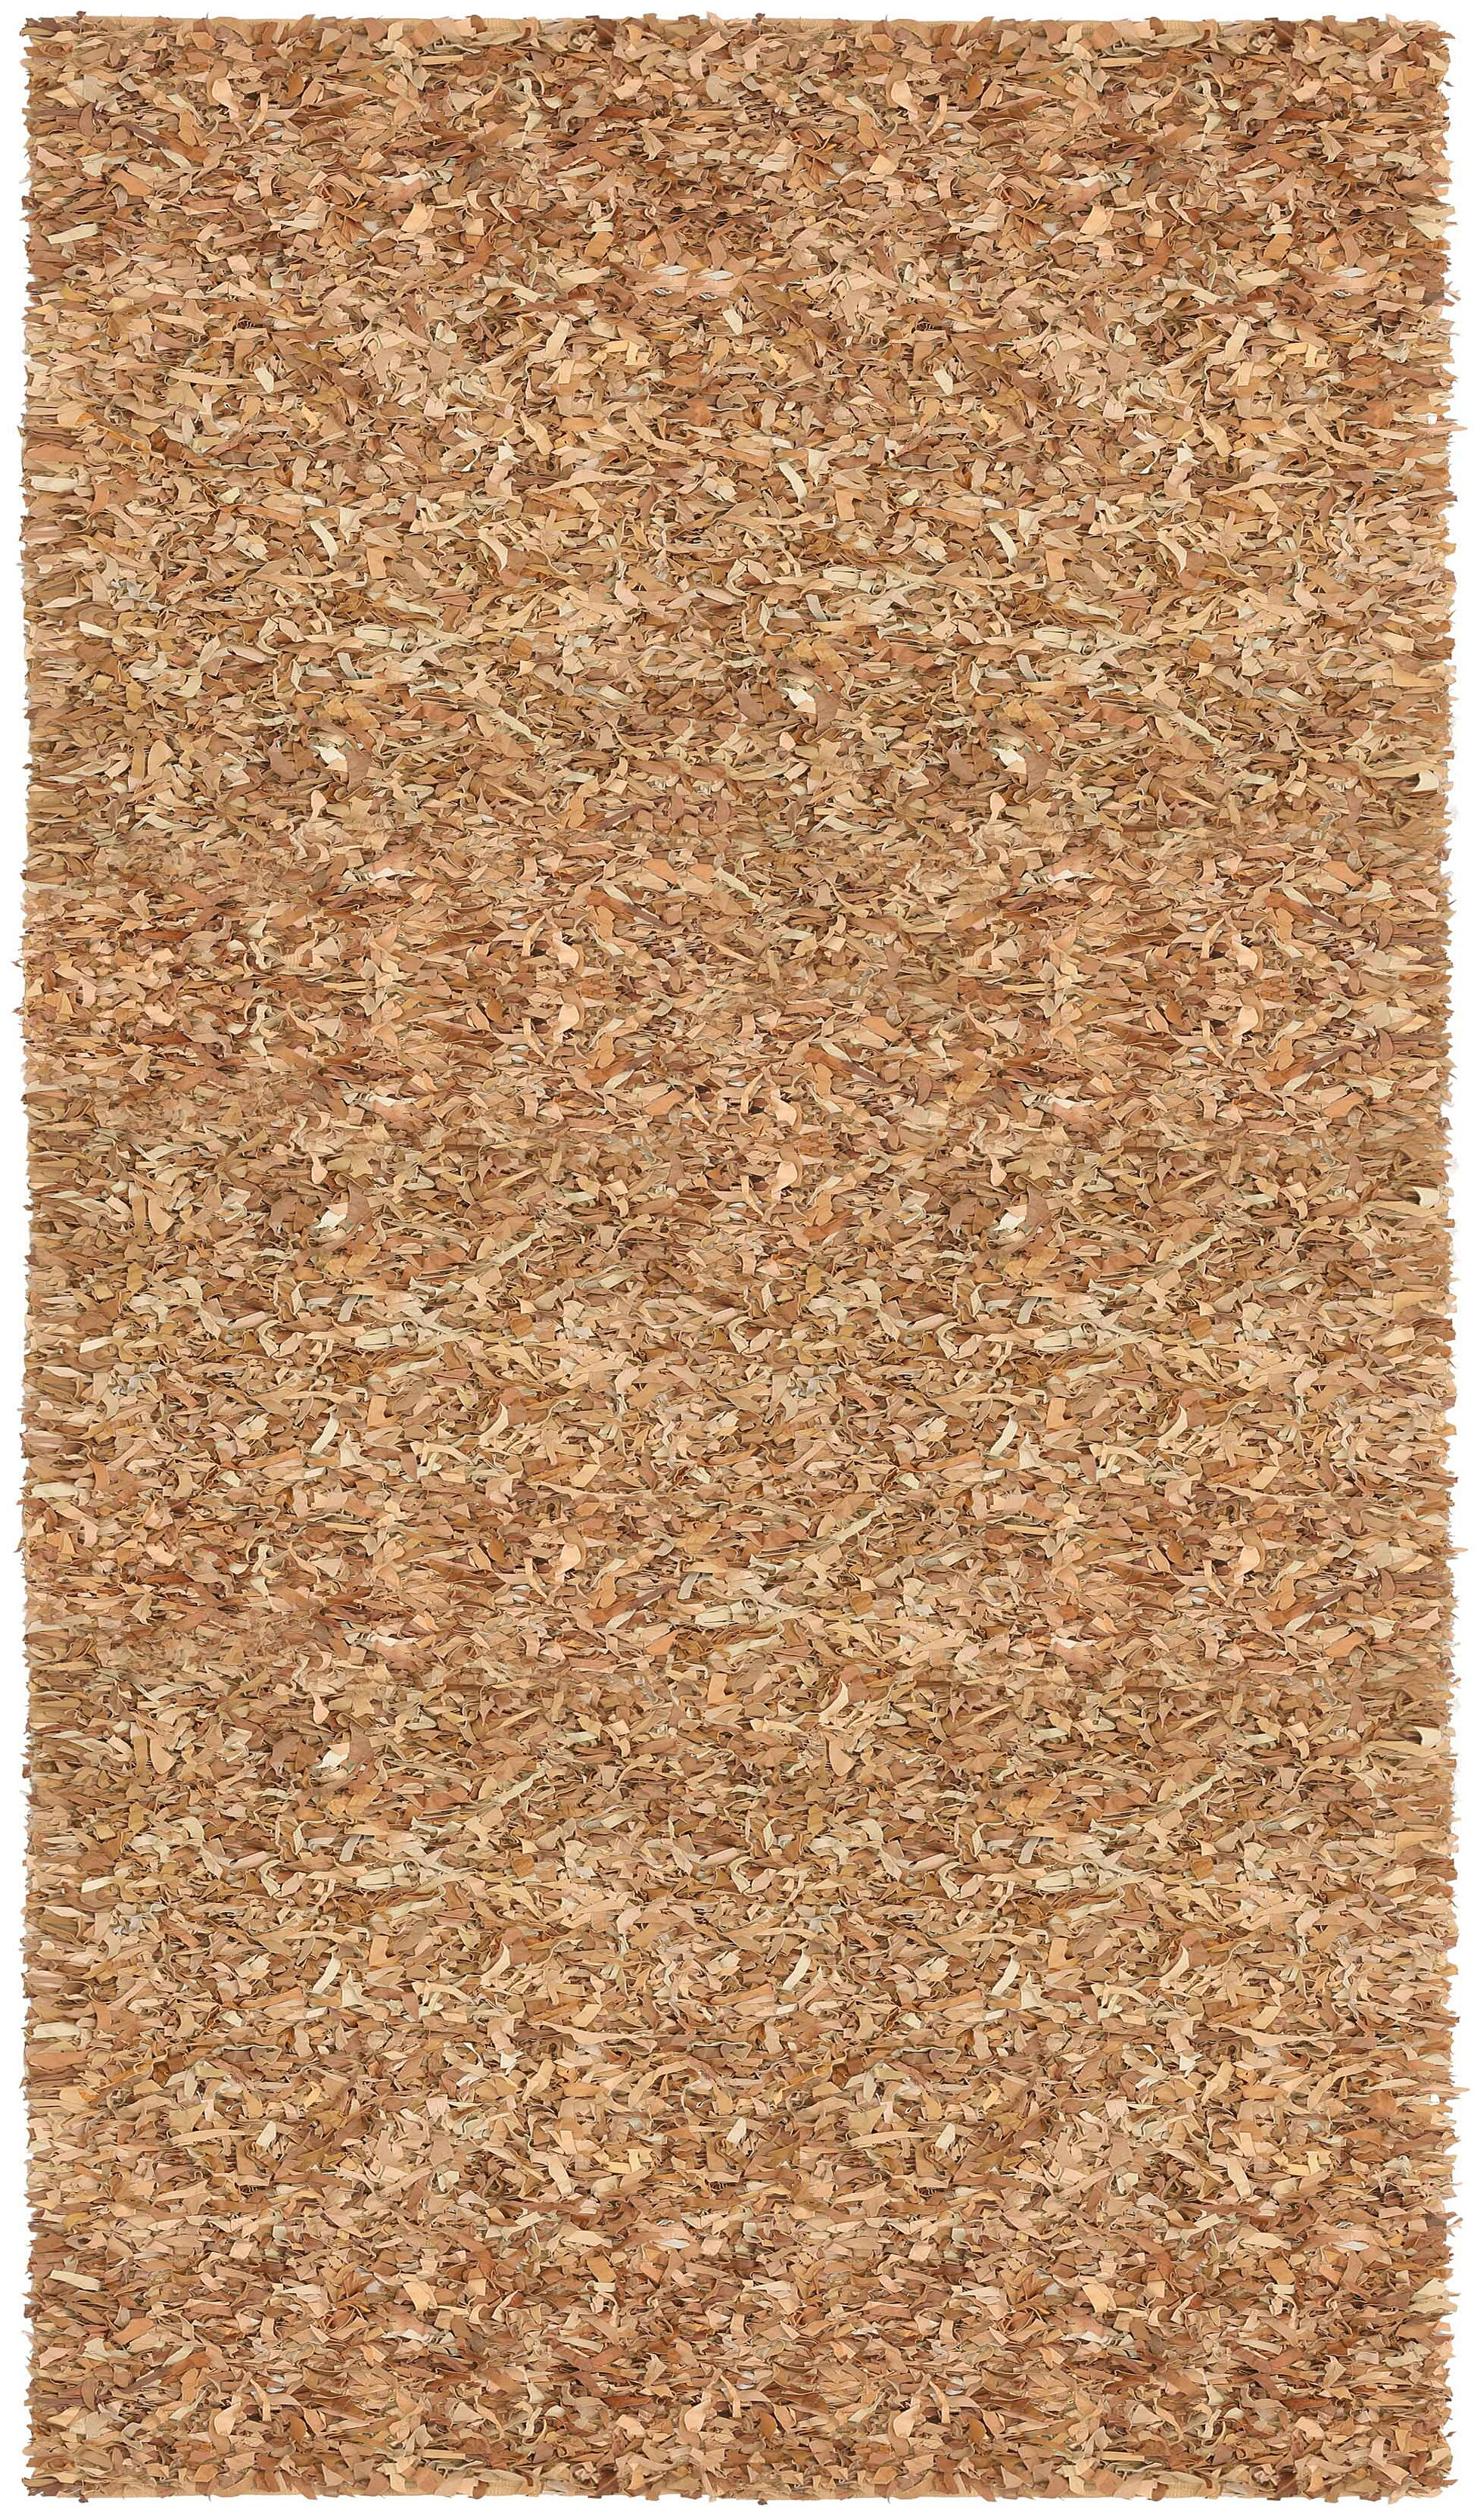 Baum Leather Tan Area Rug Rug Size: Rectangle 5' x 8'